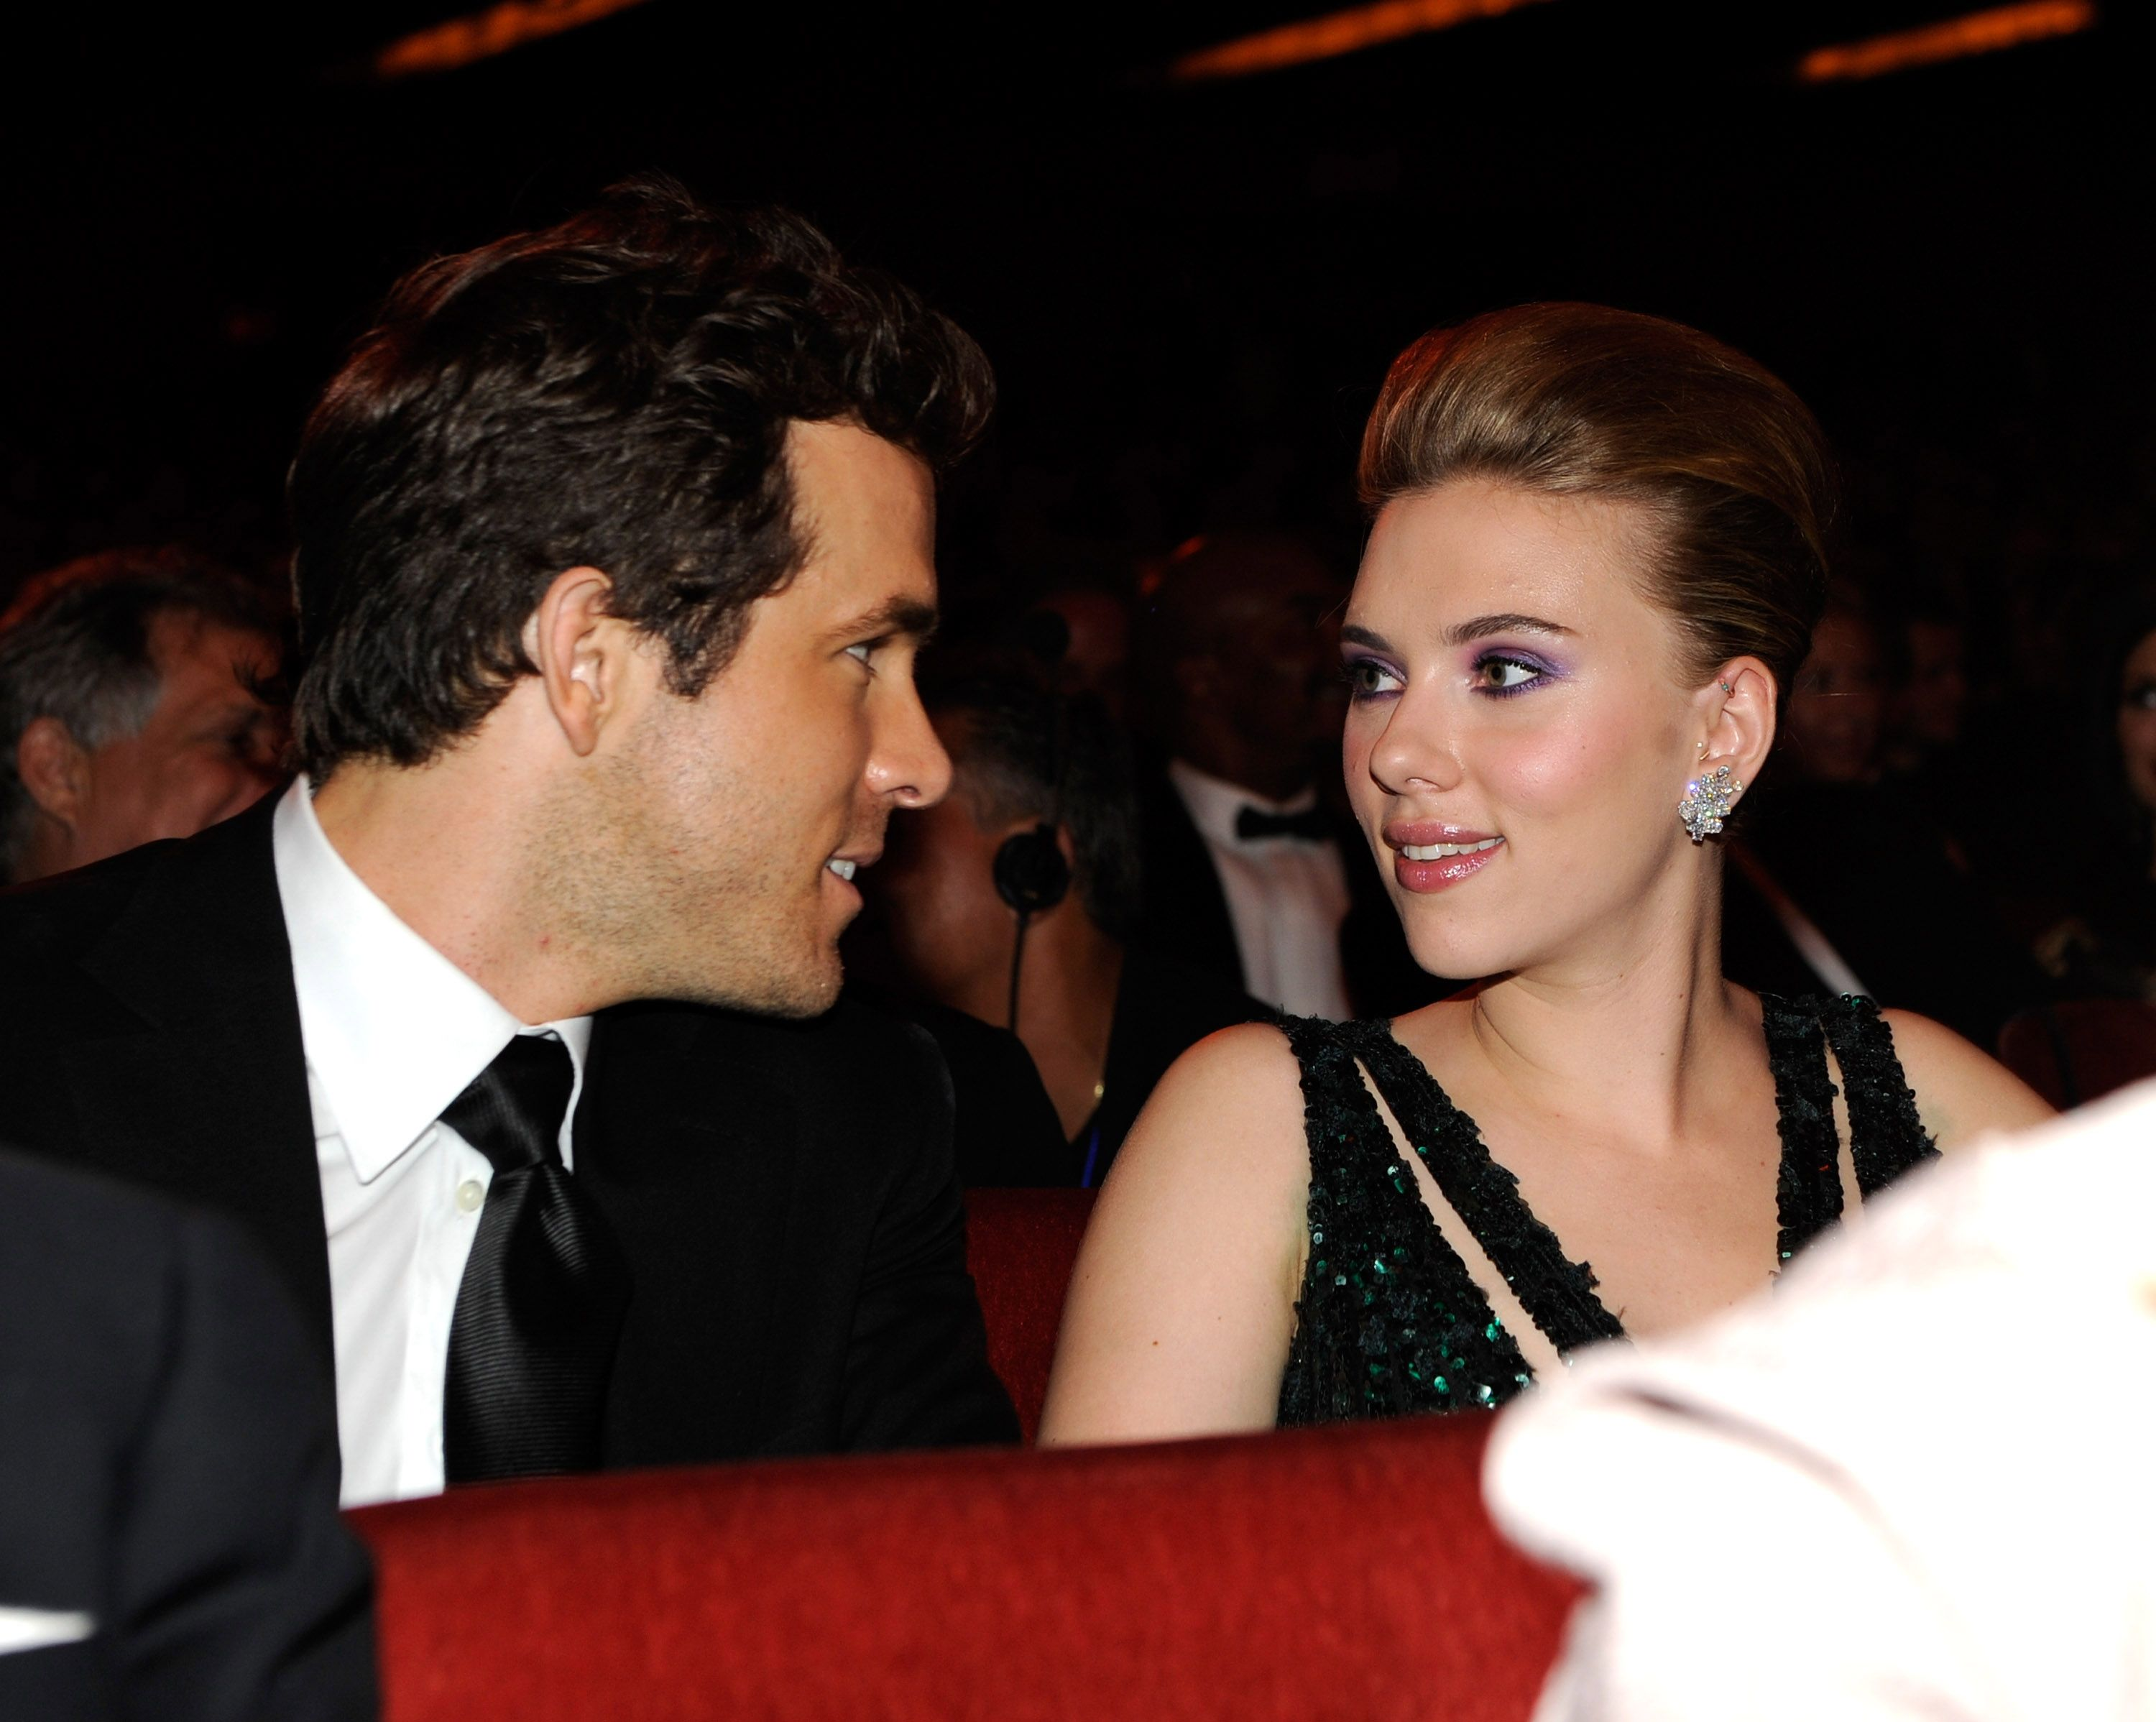 Ryan Reynolds and Scarlett Johansson at the 64th Annual Tony Awards in 2010 in New York City | Source: Getty Images